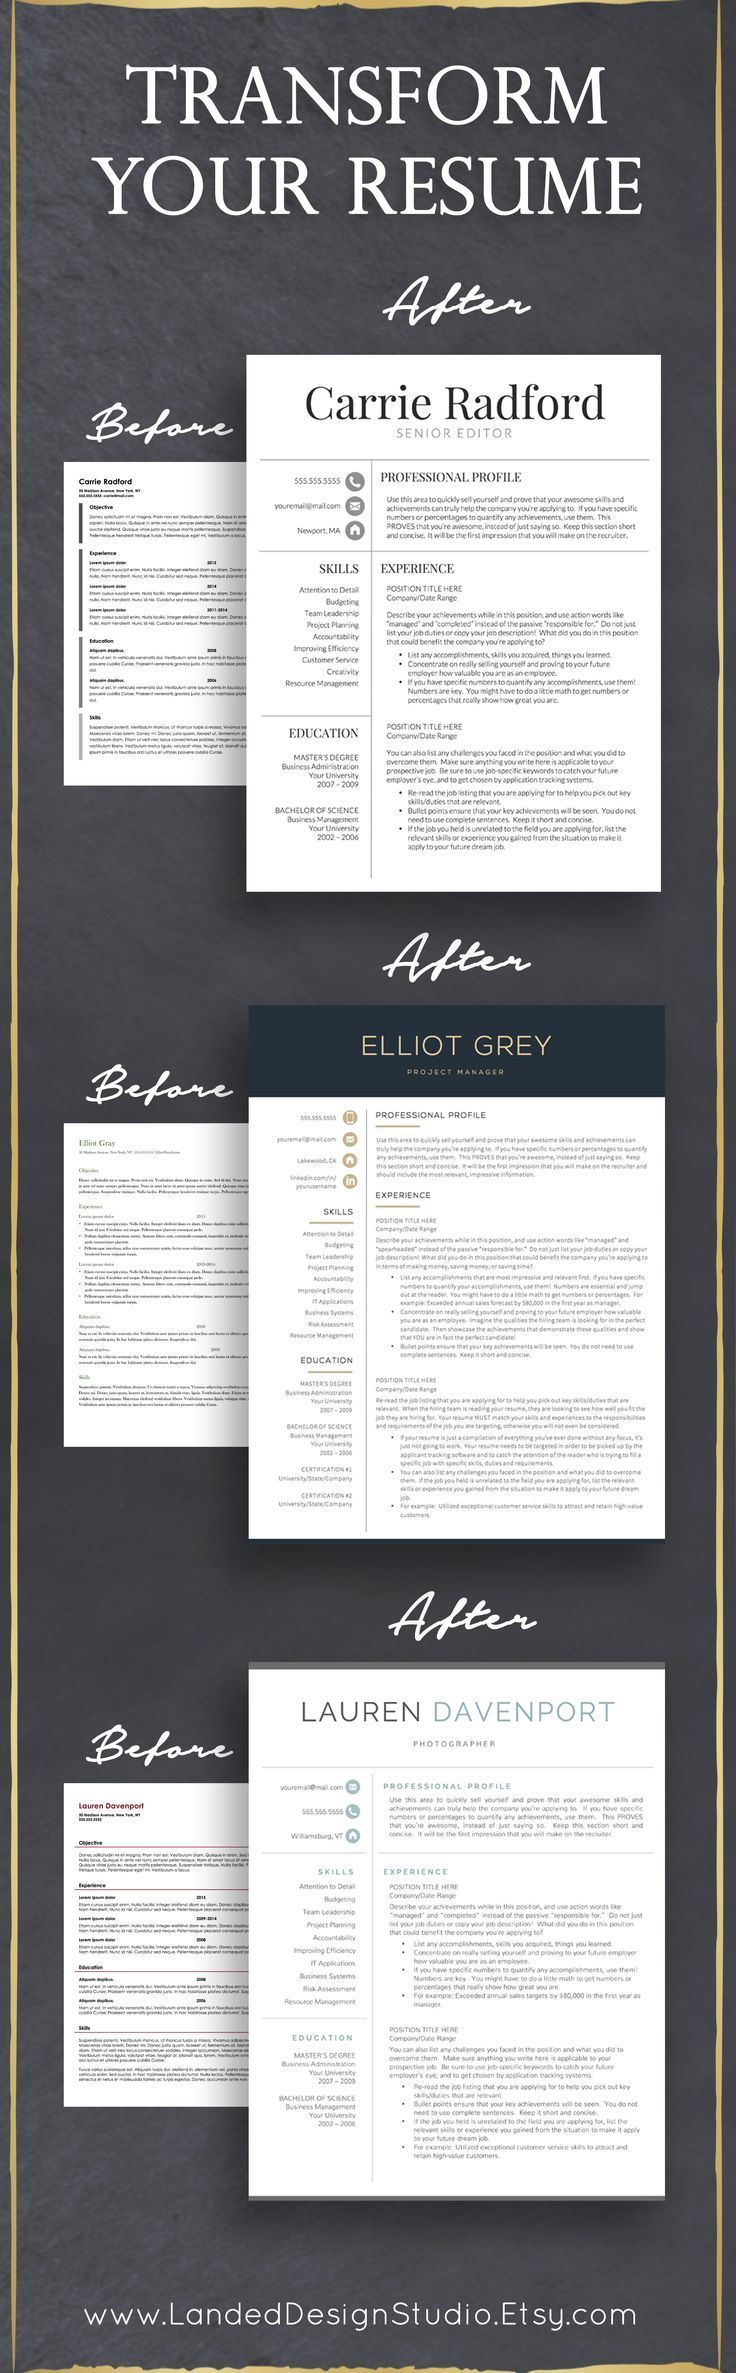 Completely transform your resume with a professional